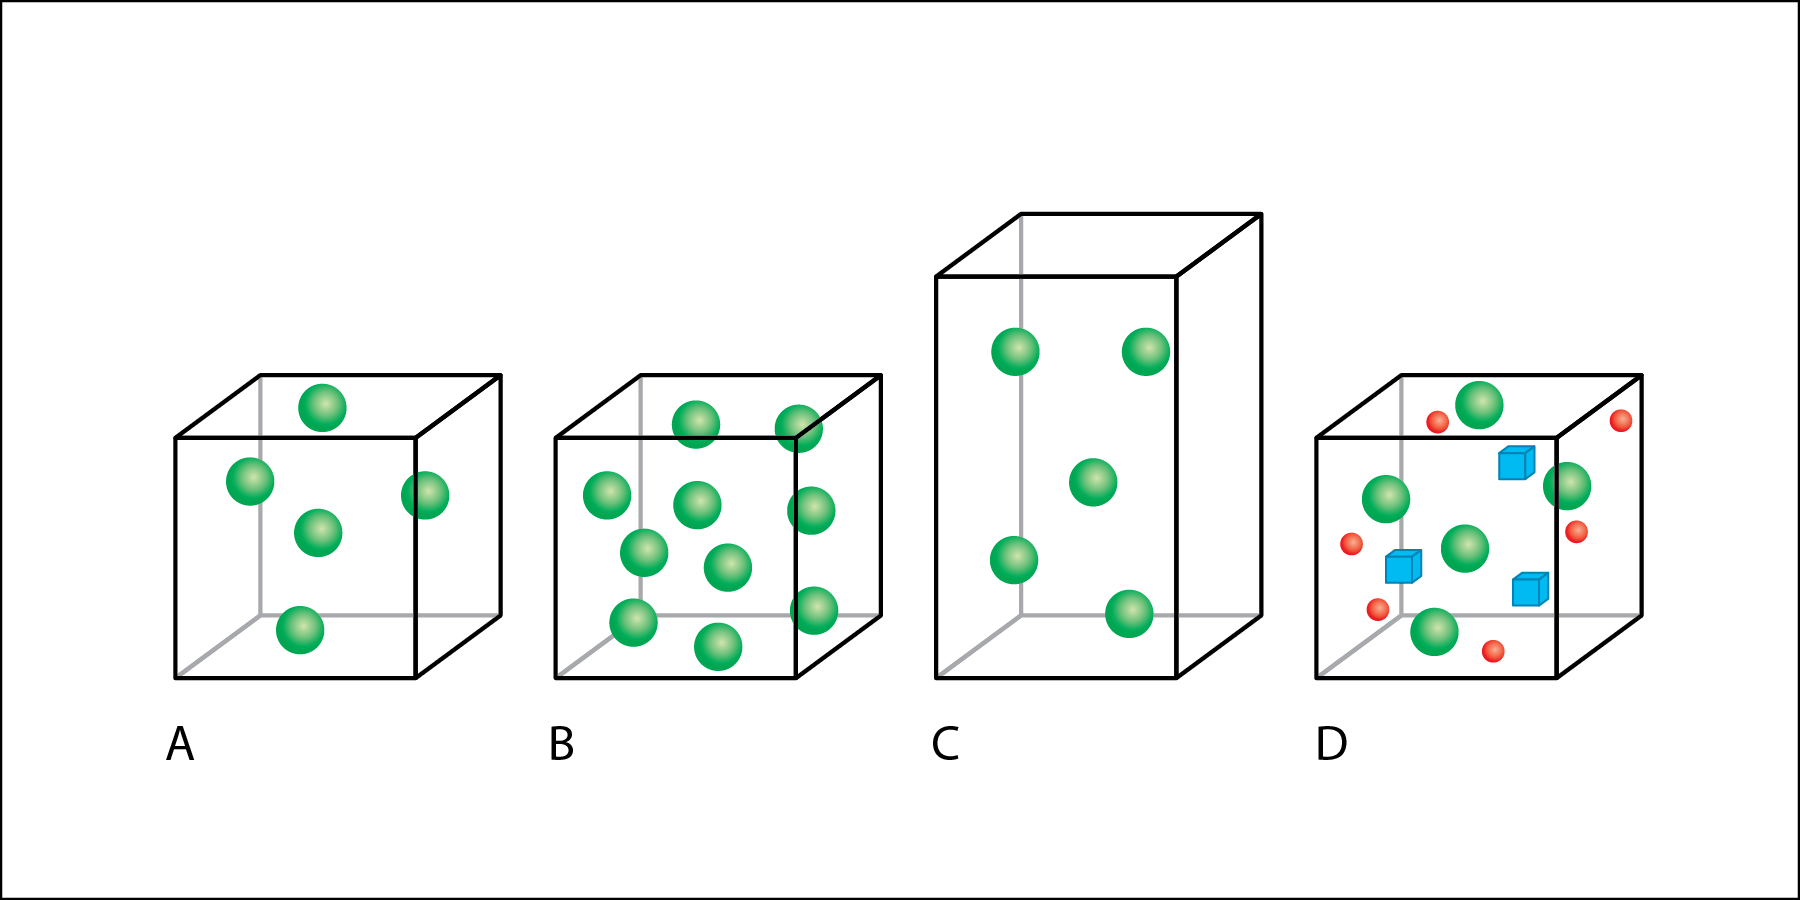 "<p><strong>Fig. 2.2.&nbsp;</strong><span style=""line-height: 1.538em;"">The boxes and colored shapes in this figure demonstrate the effects of changing mass and volume on density.</span></p>"